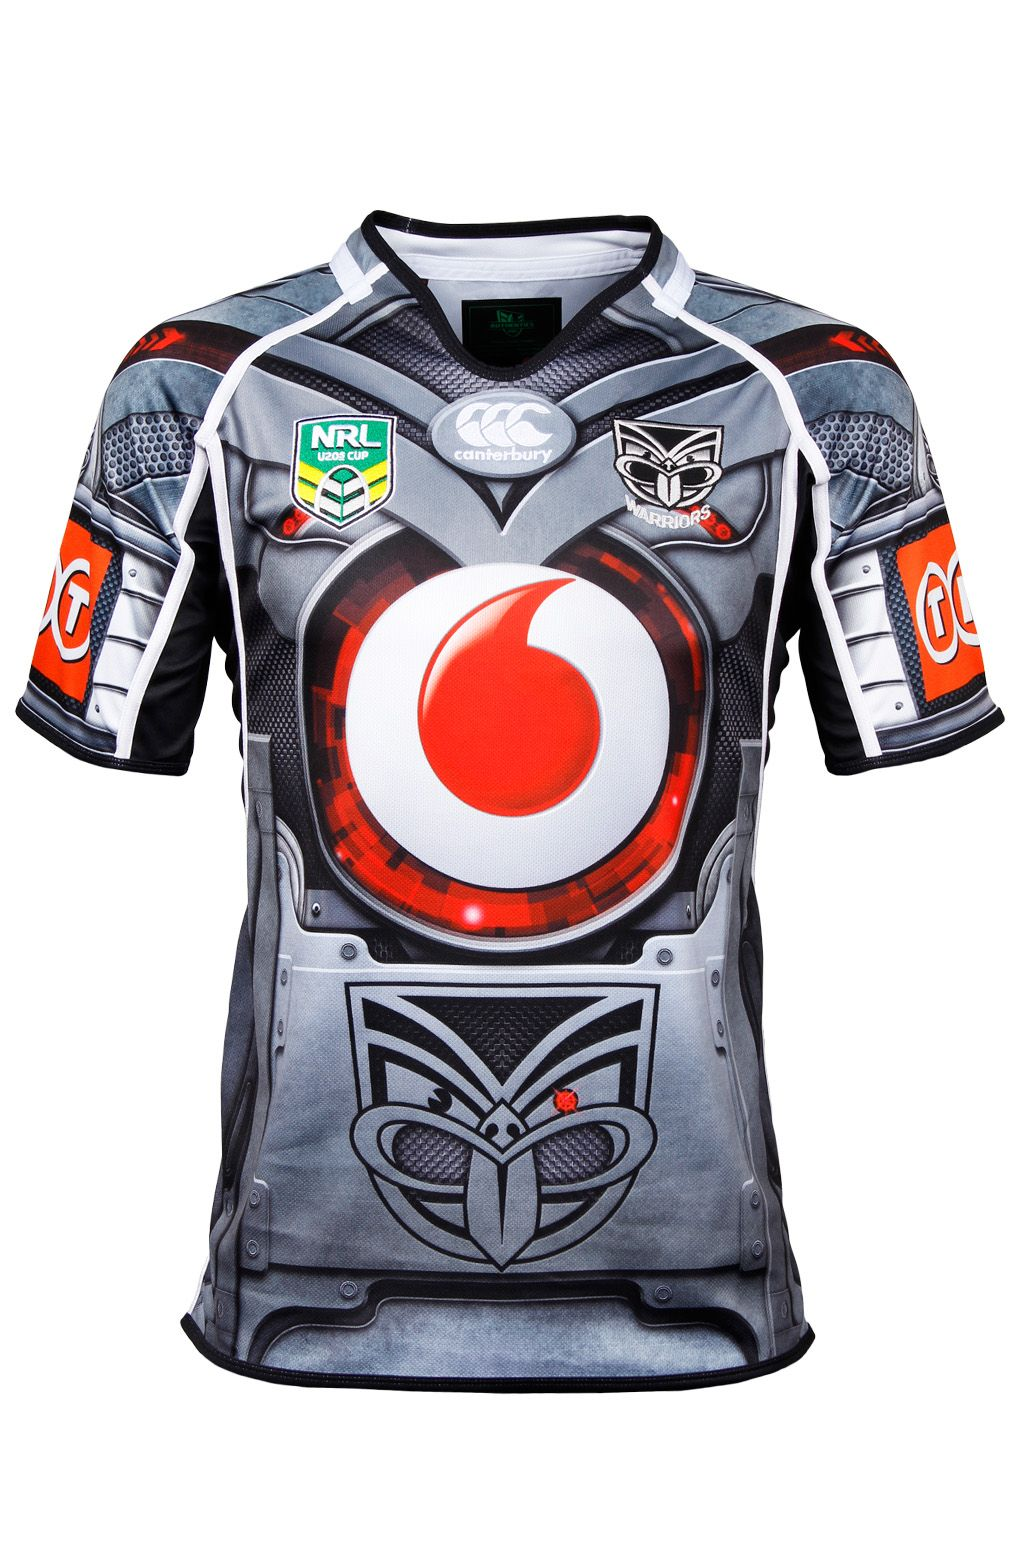 b8ec3e634b4c1 Buy Australia's Best Sports Lifestyle Clothing and Accessories - Canterbury  NZ - Shop - Supporters - Warriors 2013 Under 20's Home Jersey